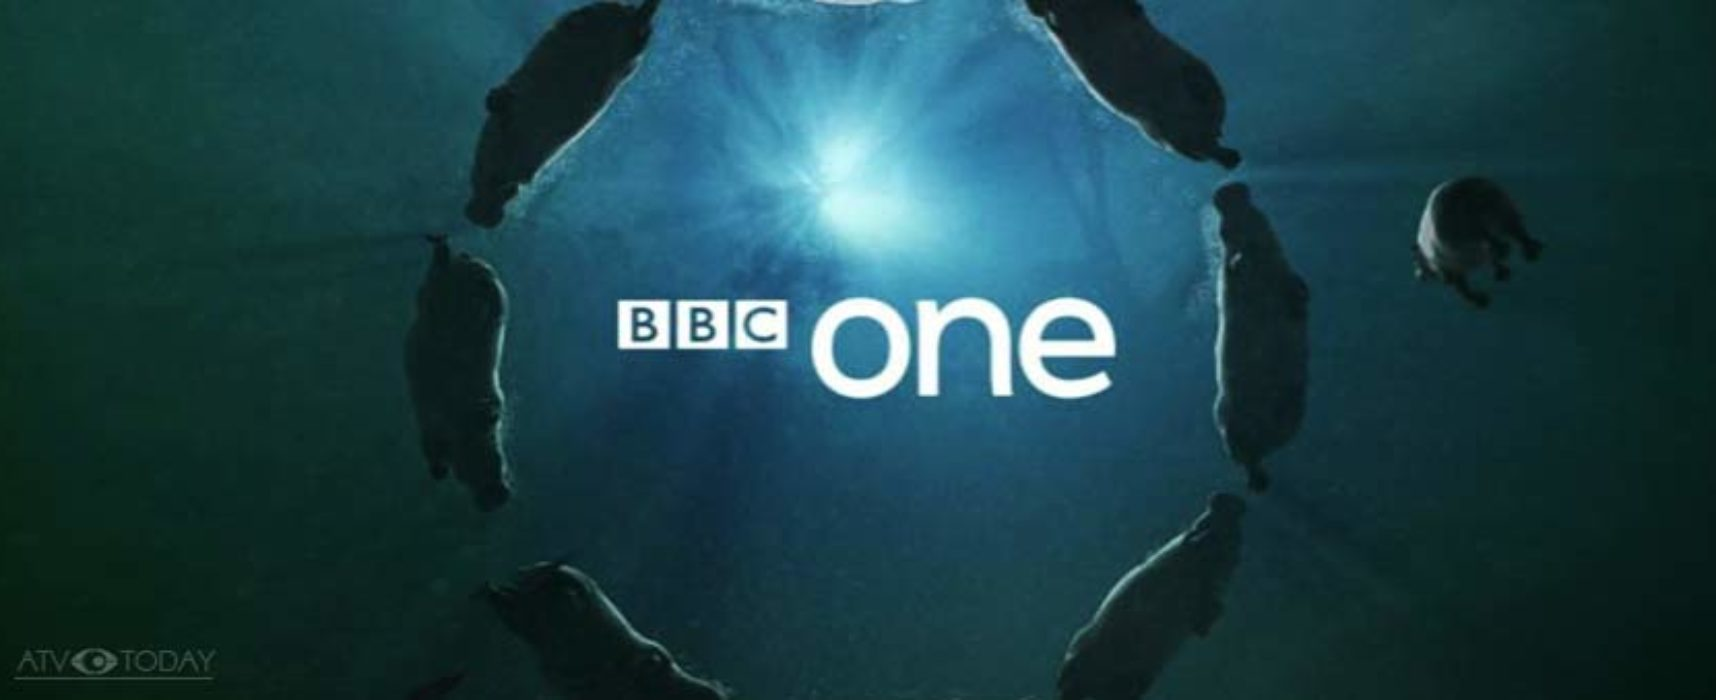 New Lottery Quiz For BBC One